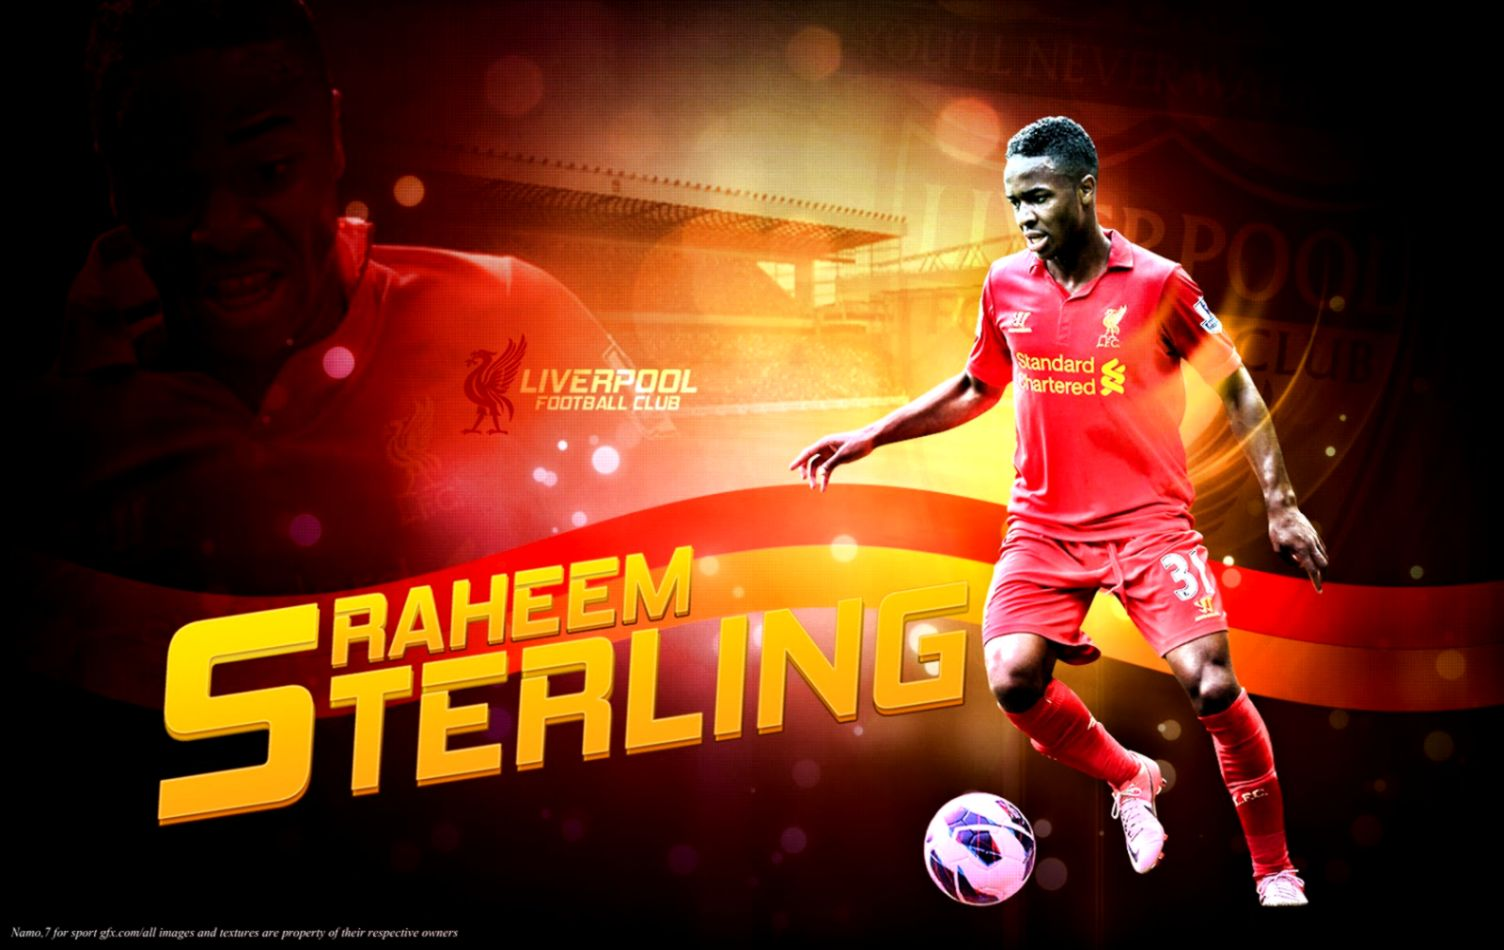 raheem sterling 2015 hd wallpapers ›› Page 0  SOLID WALLPAPERS